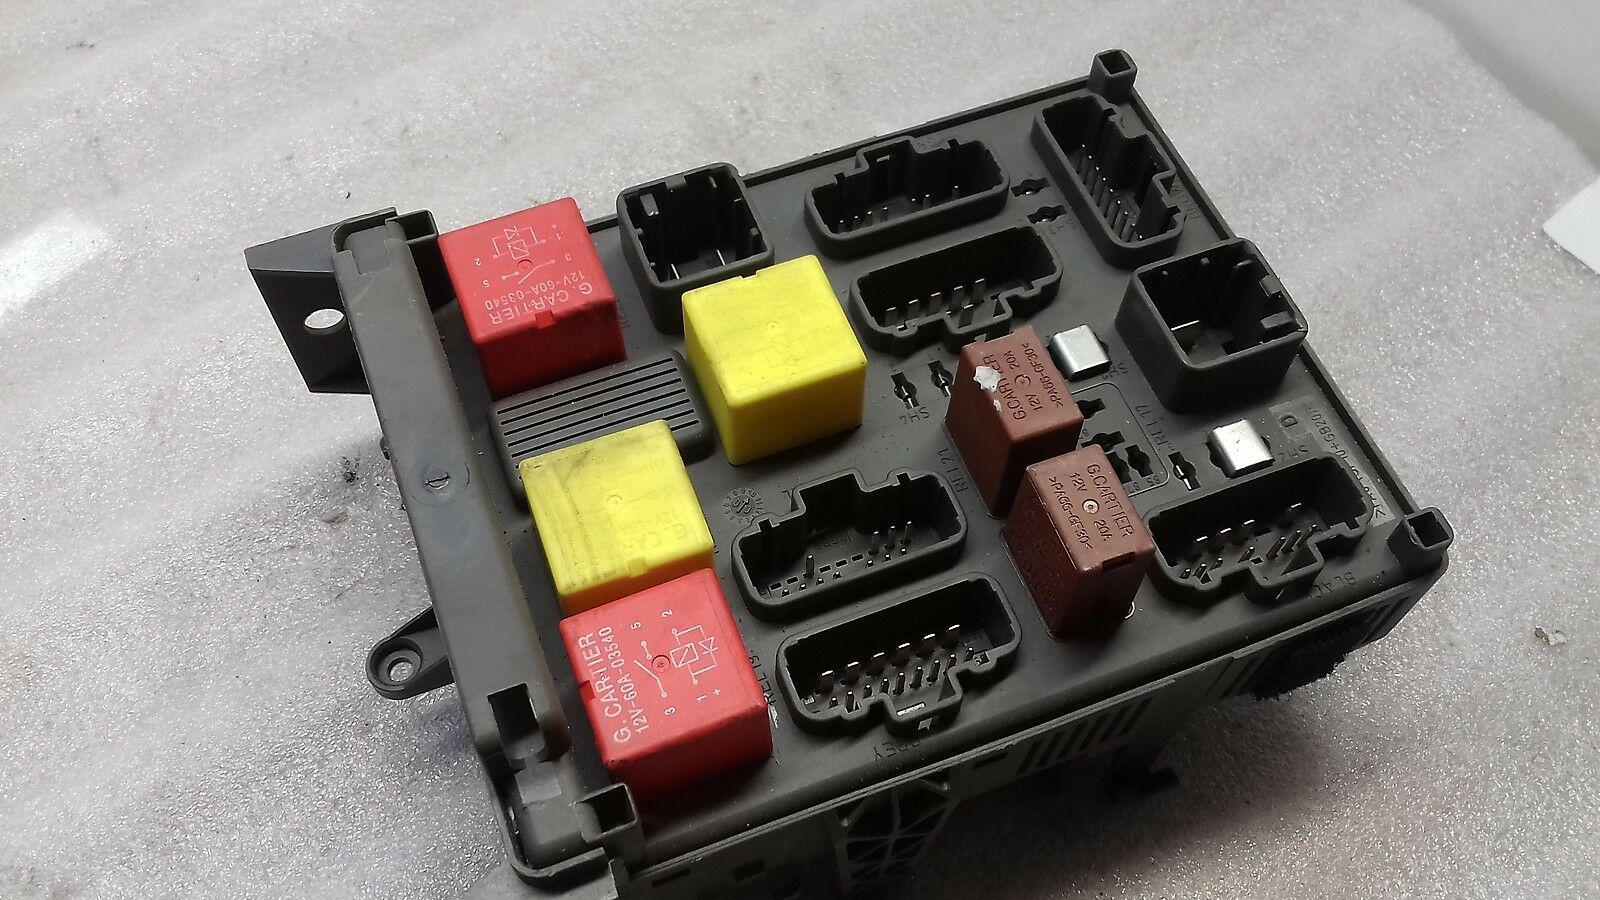 2003 Renault Espace Laguna Fuse Relay Box 518837018 1000 1 Of 6only Available